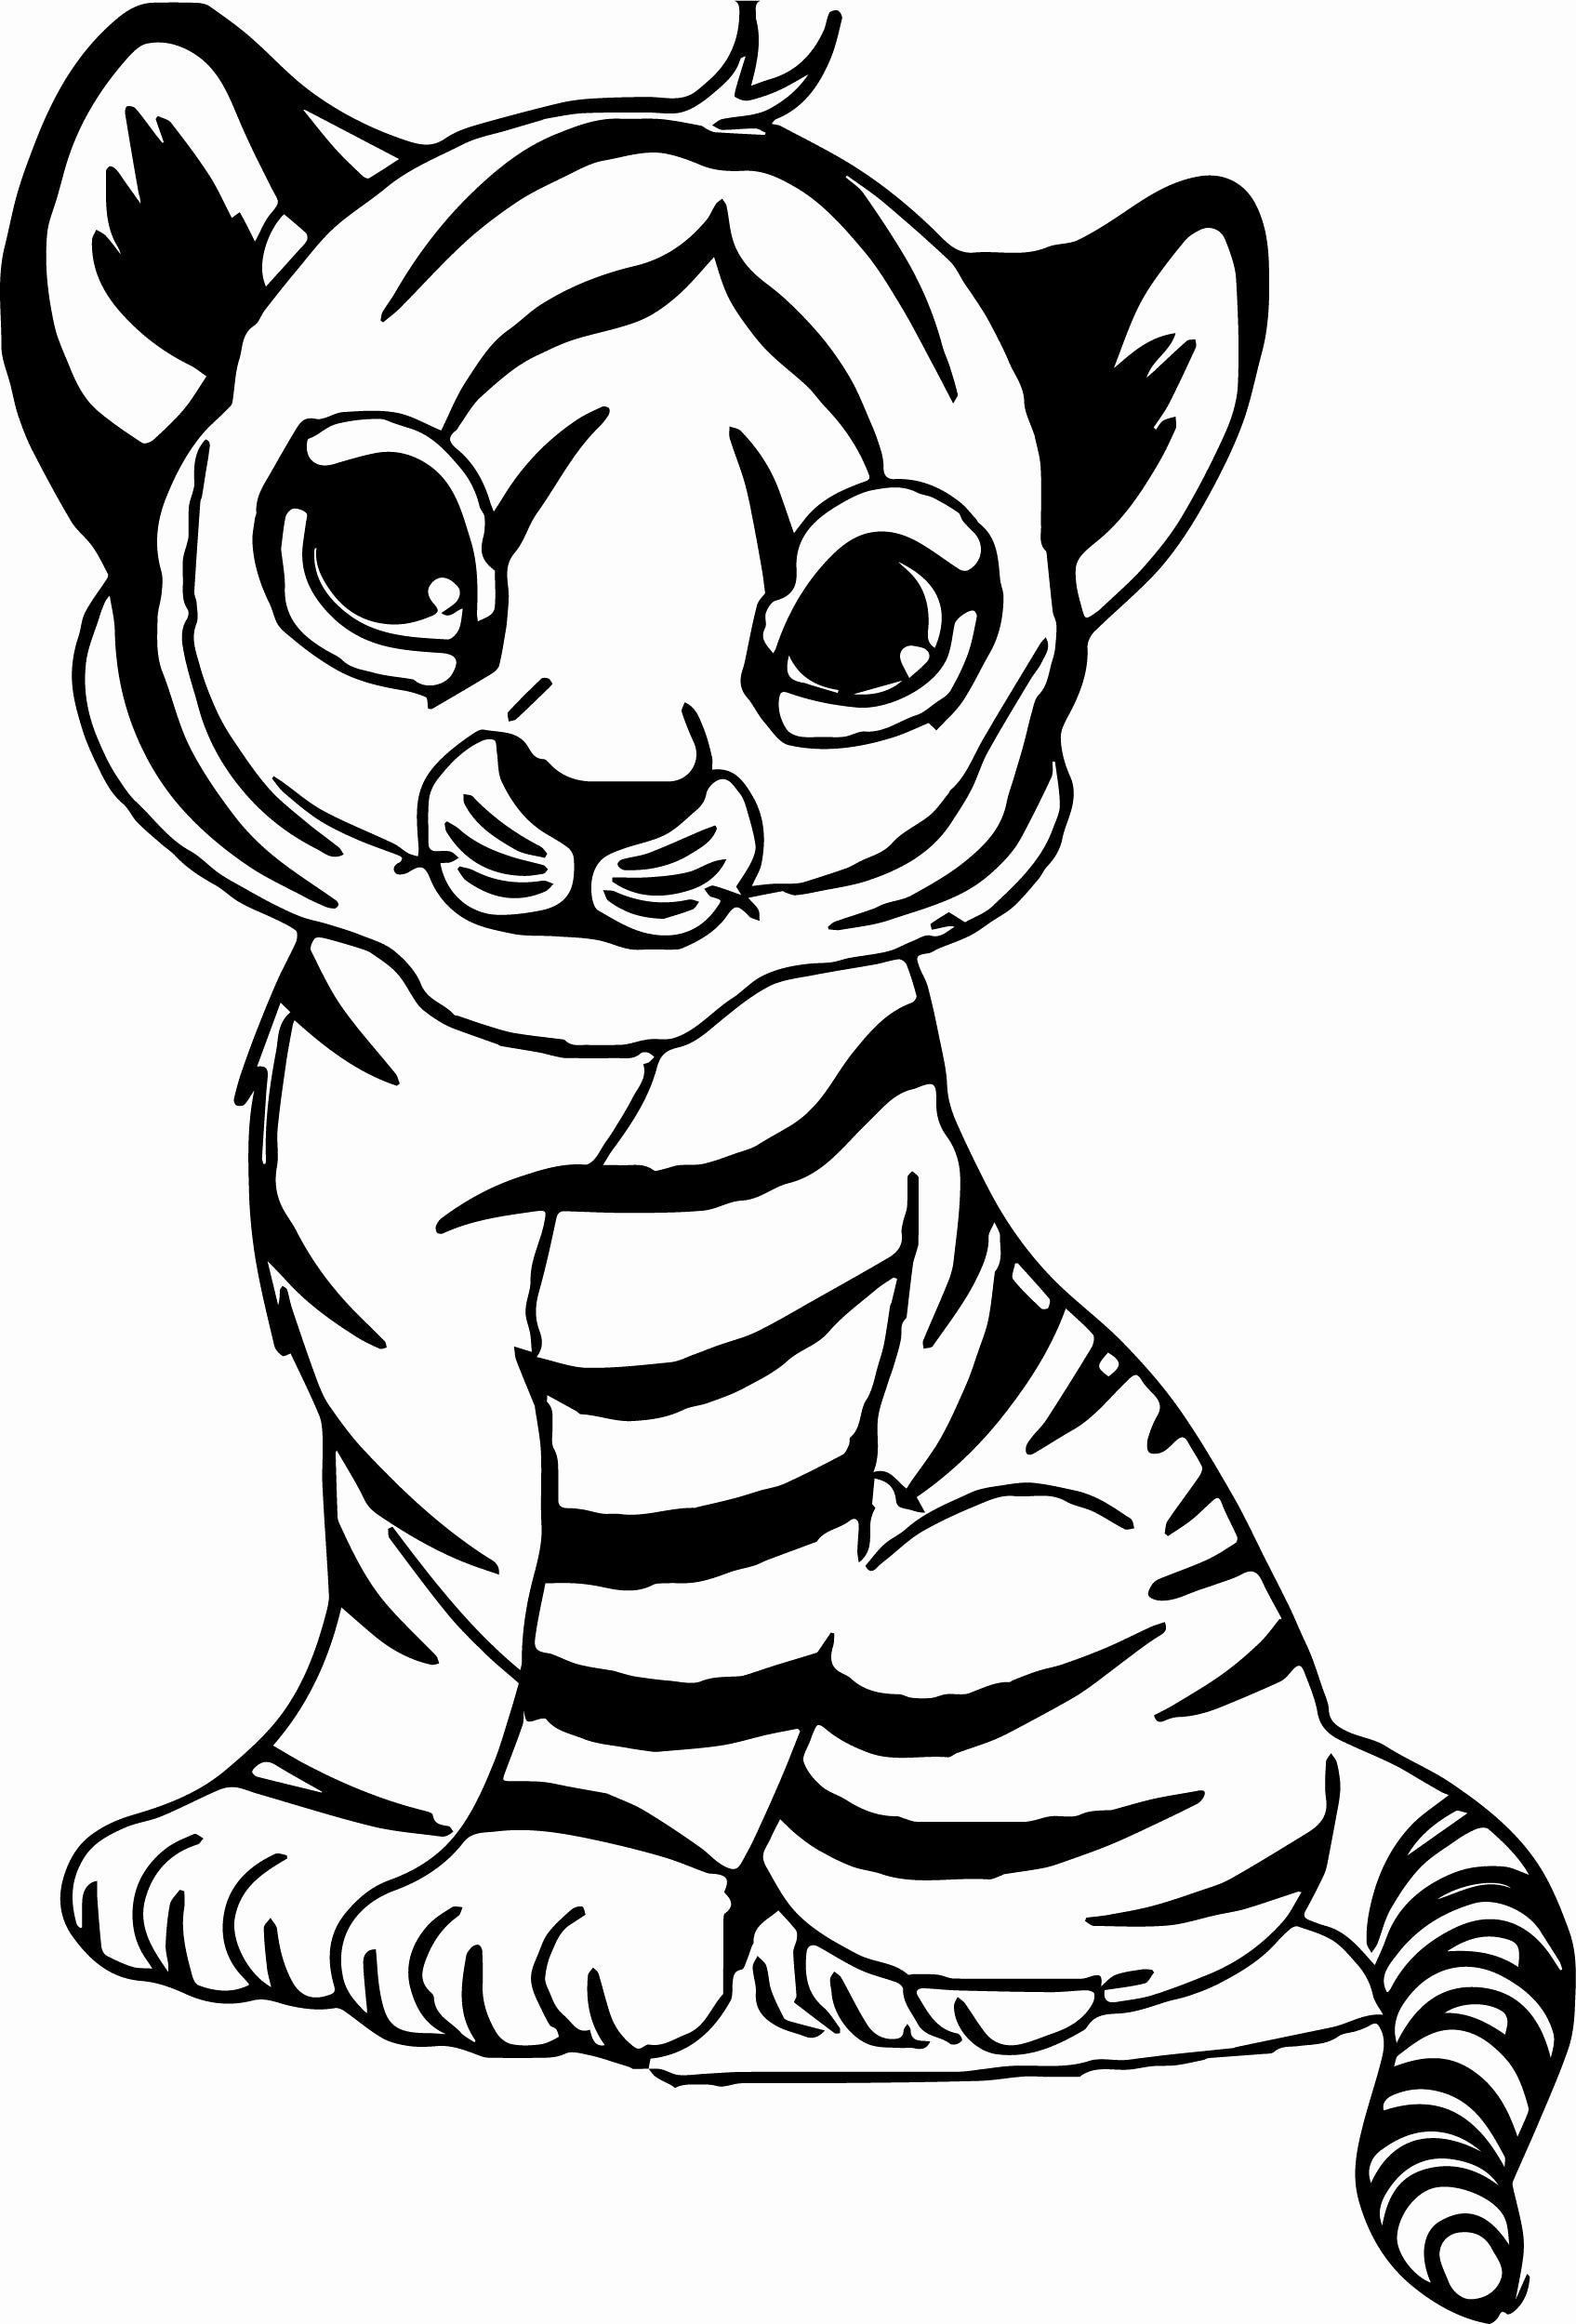 zoo animal coloring free coloring pages for kids zoo animals google search coloring zoo animal